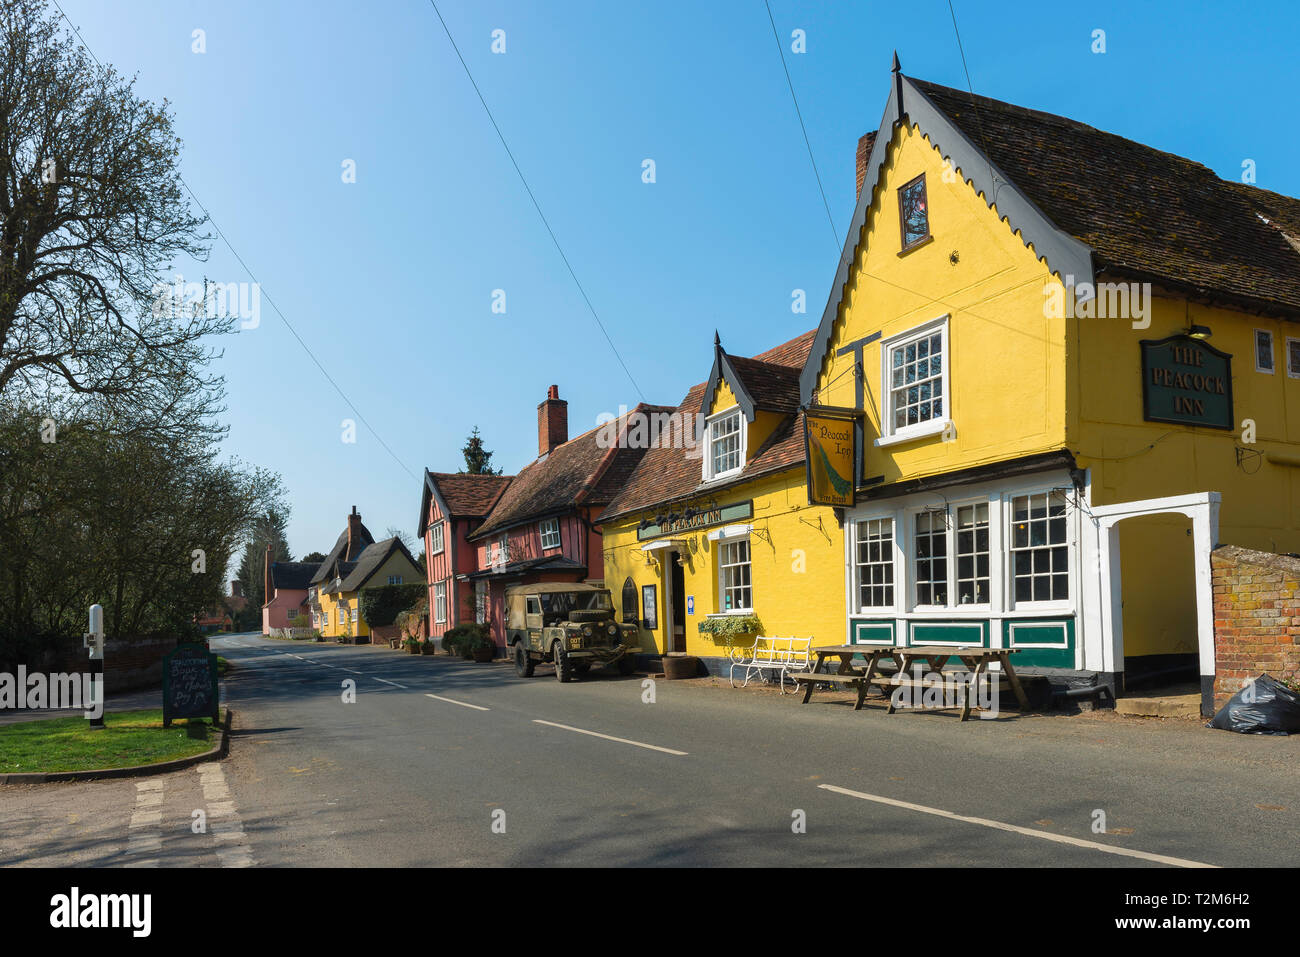 Chelsworth Suffolk, view of The Peacock Inn pub and colourful houses sited along The Street in the centre of the village of Chelsworth, Suffolk, UK - Stock Image